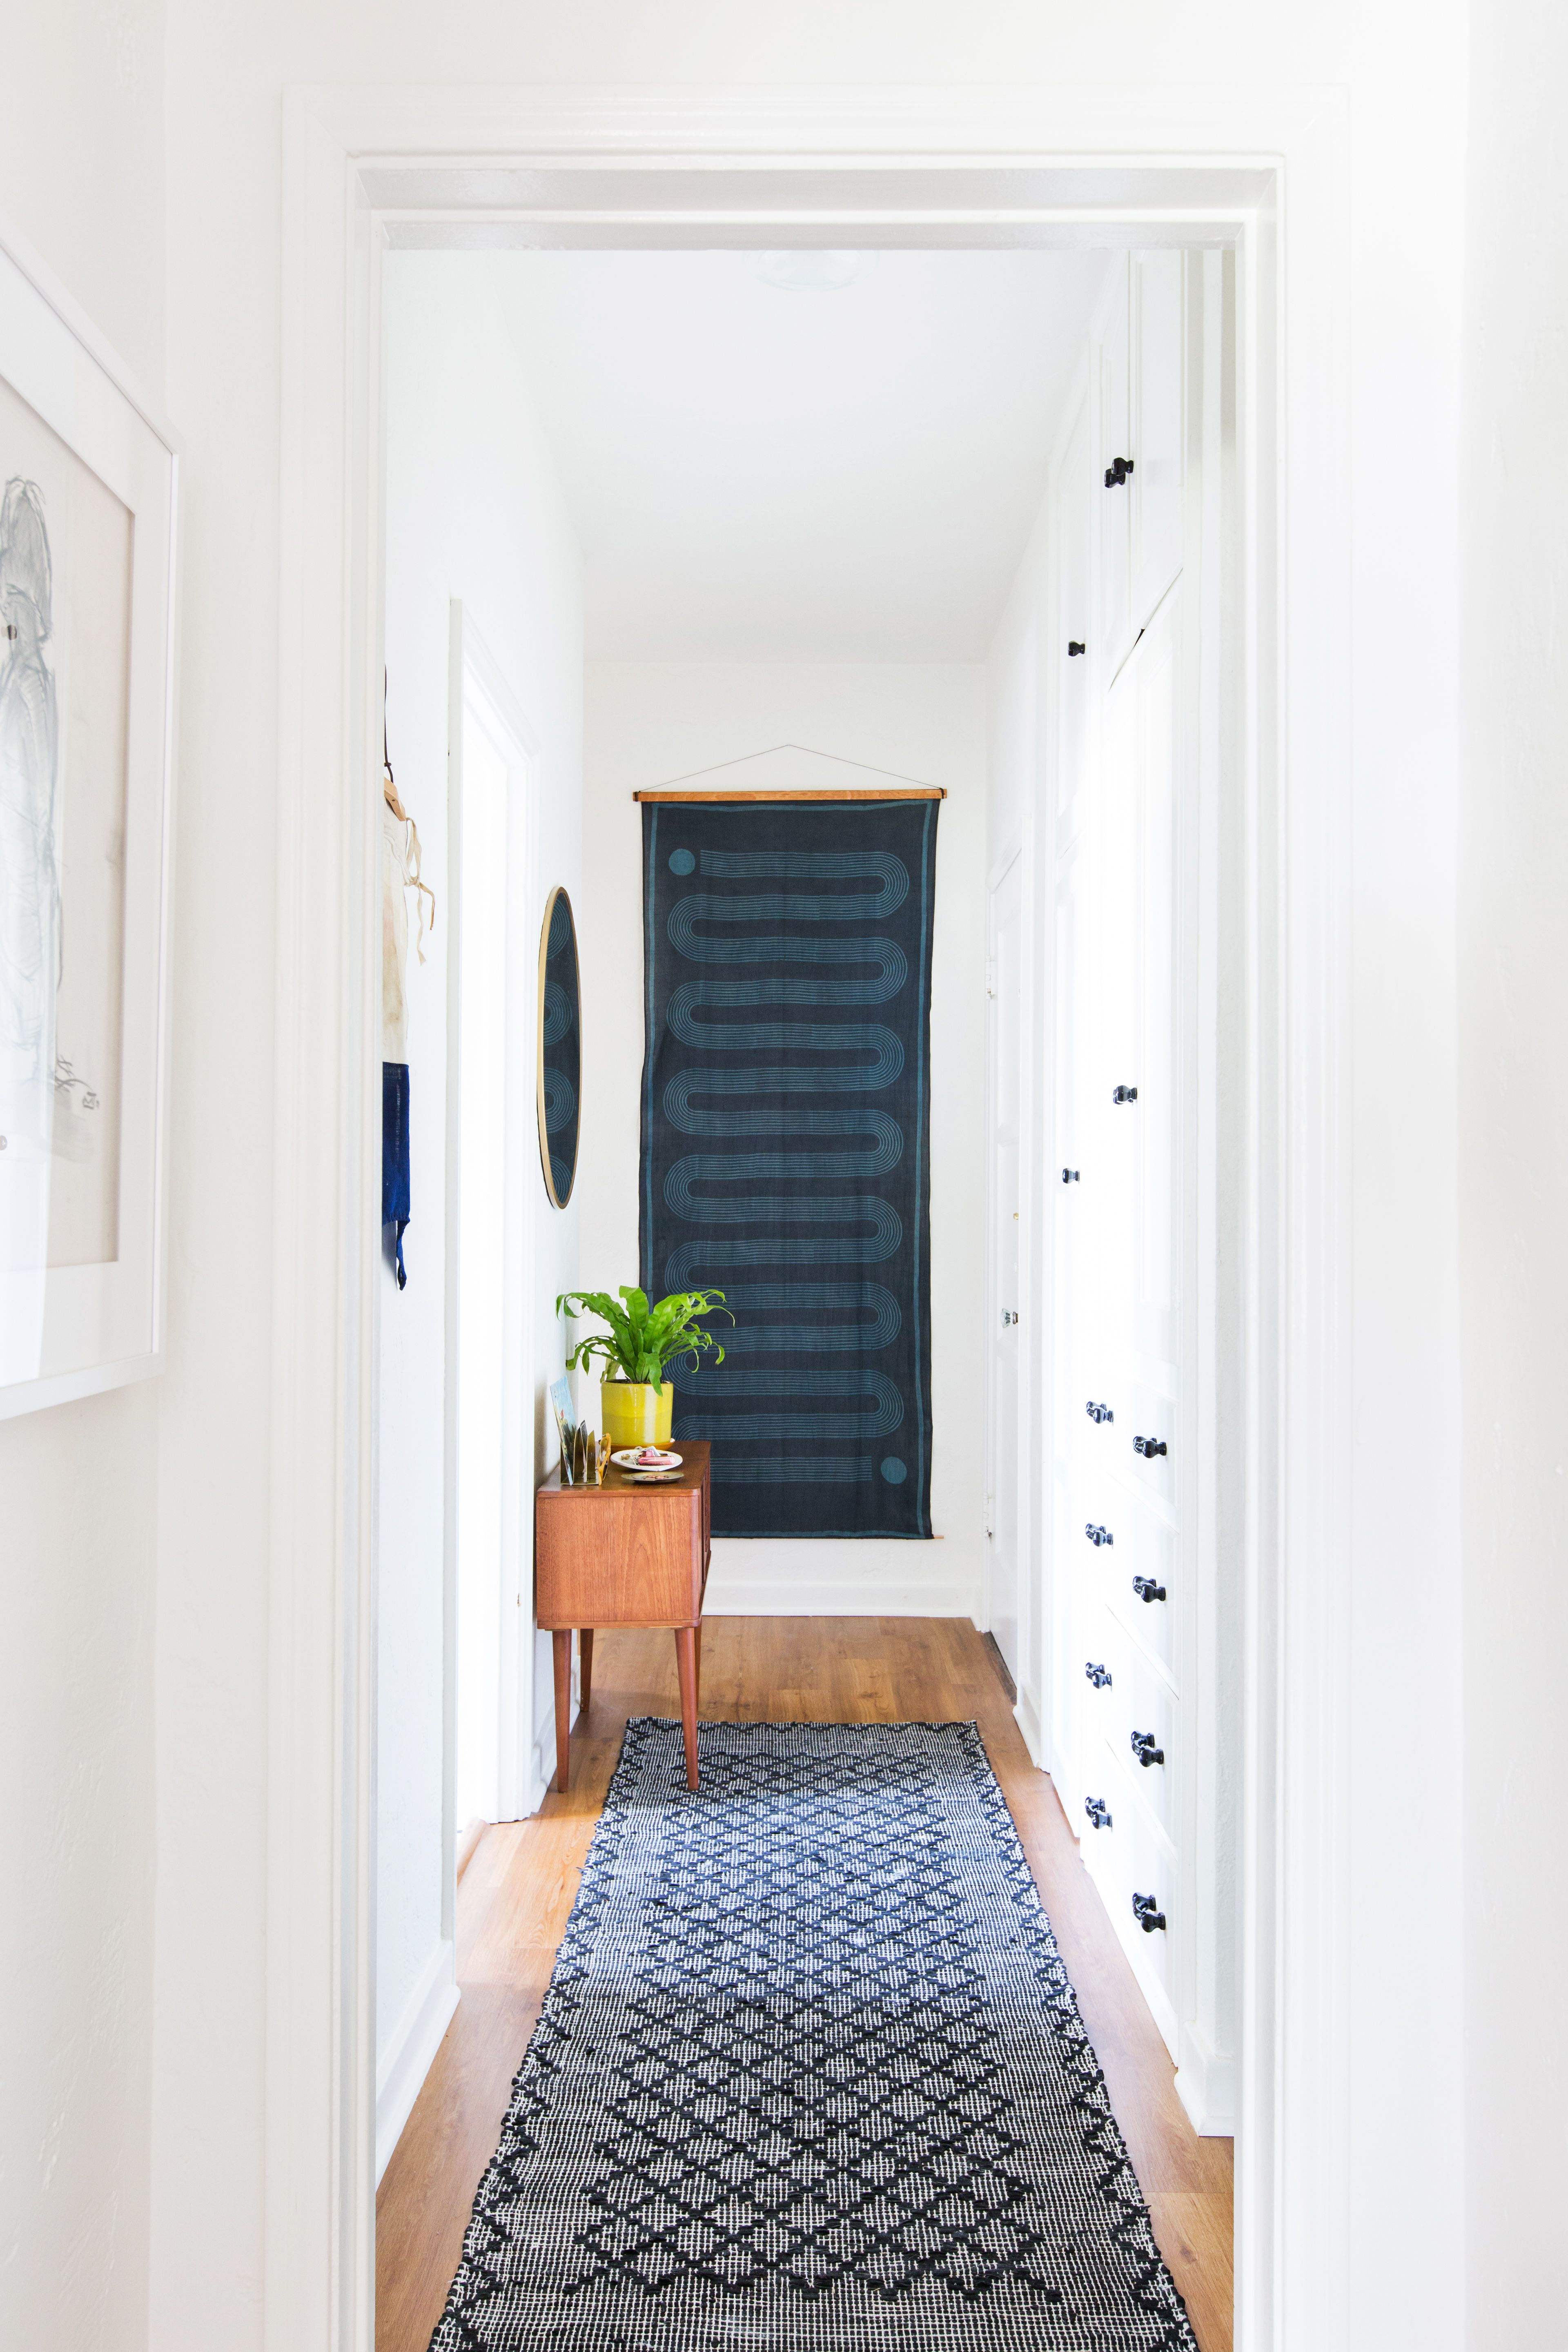 18 Hallway Decor Ideas For Wall To Wall Style